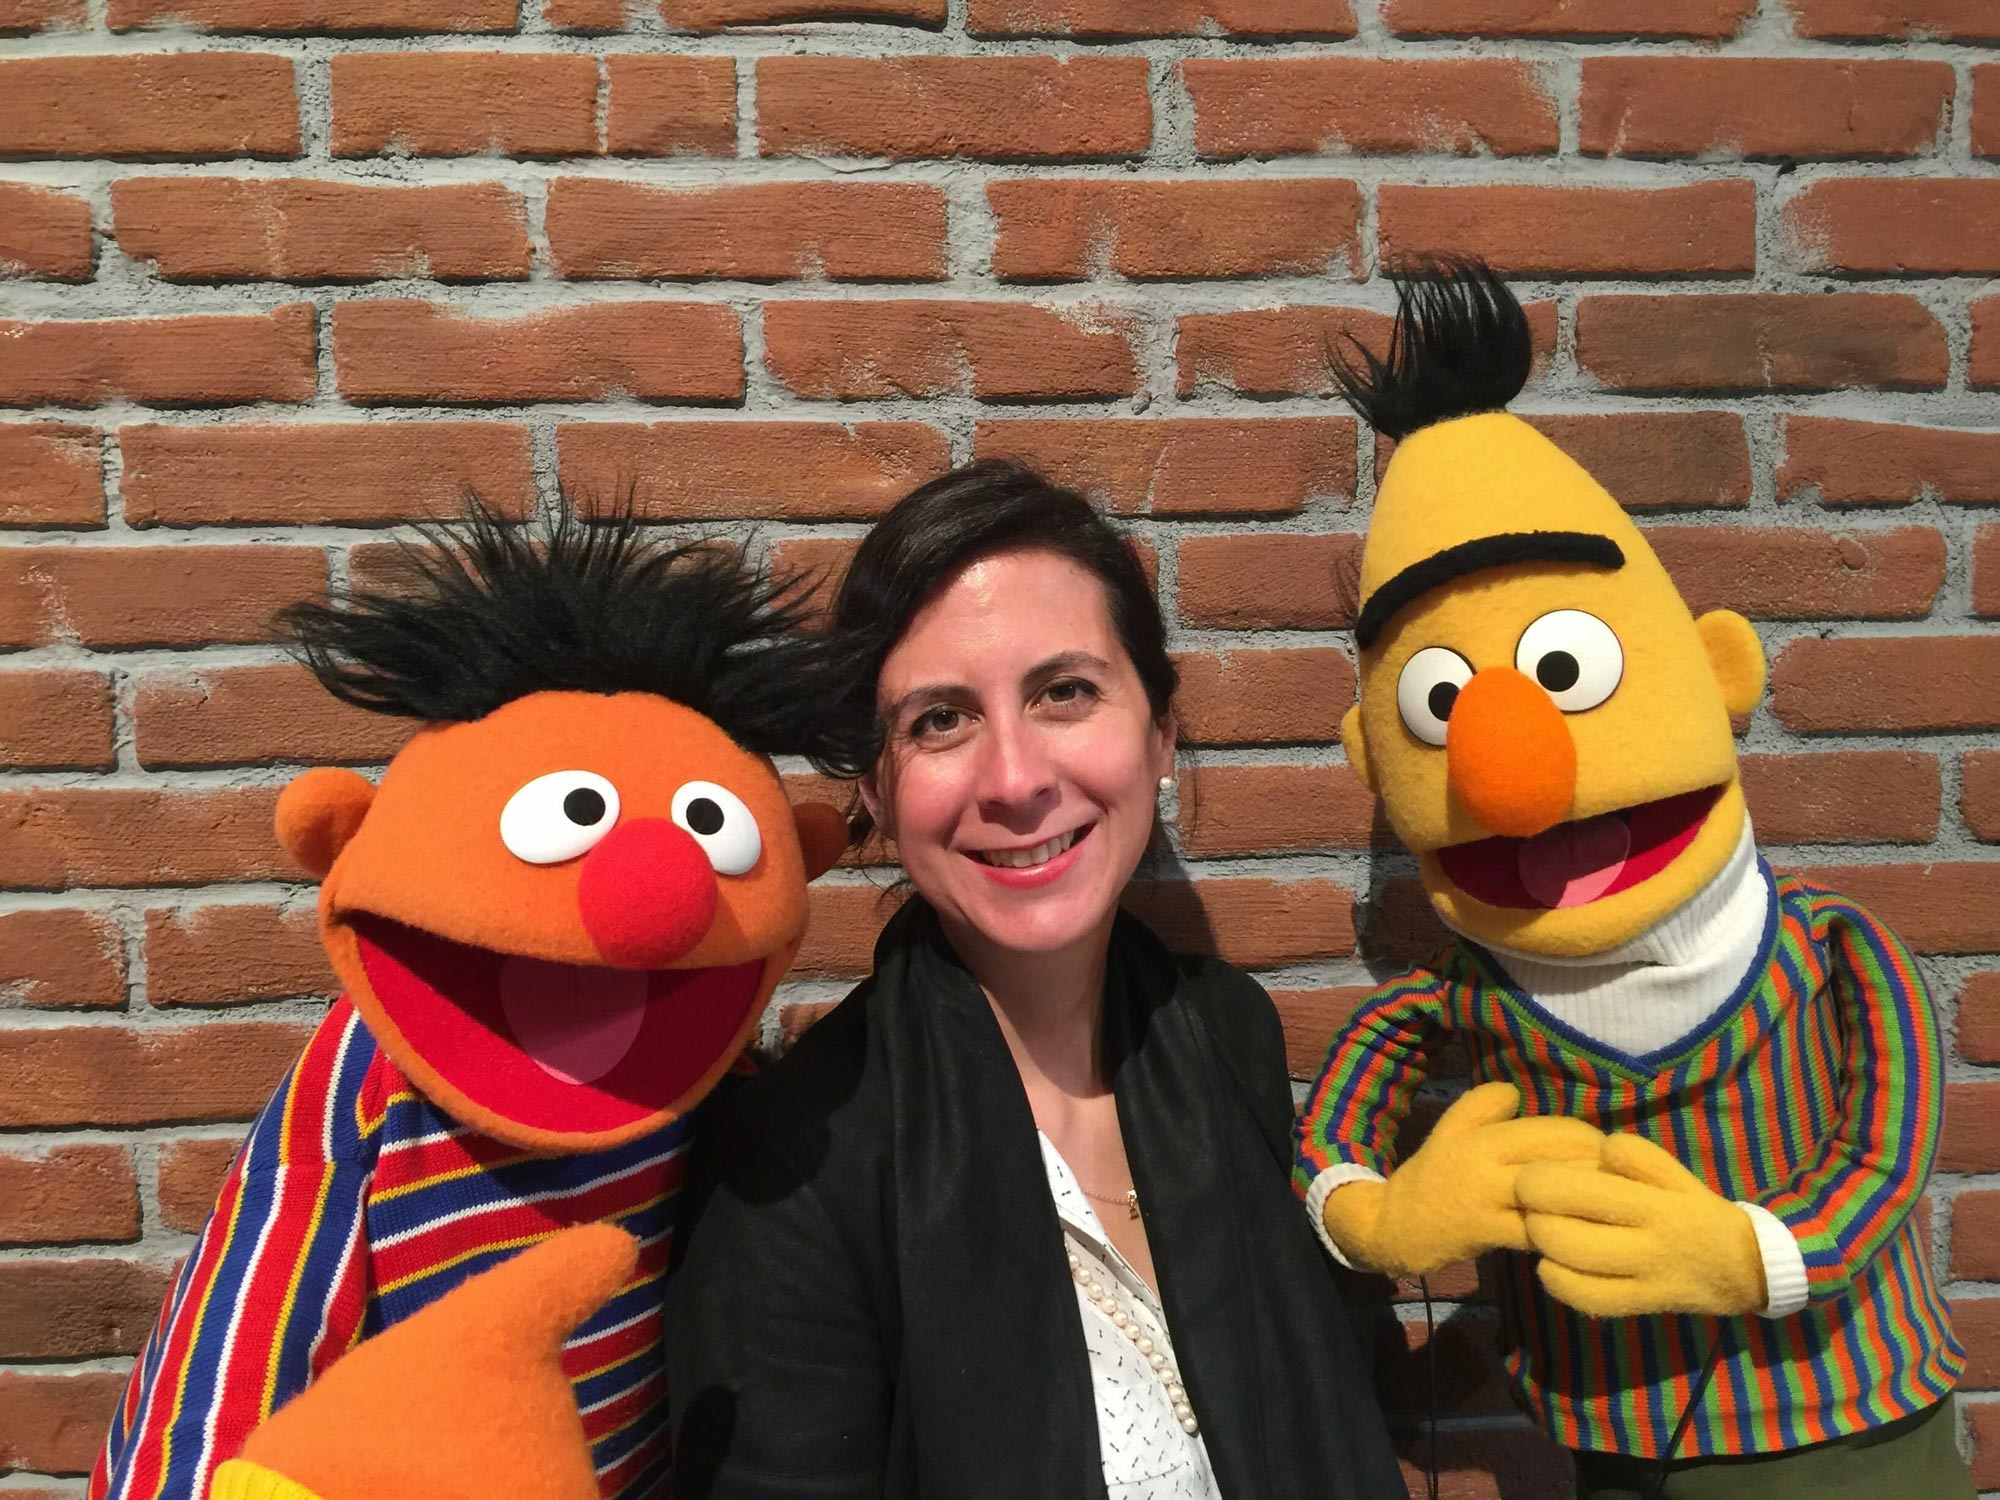 Brenda Campost with Sesame Street characters Ernie and Bert